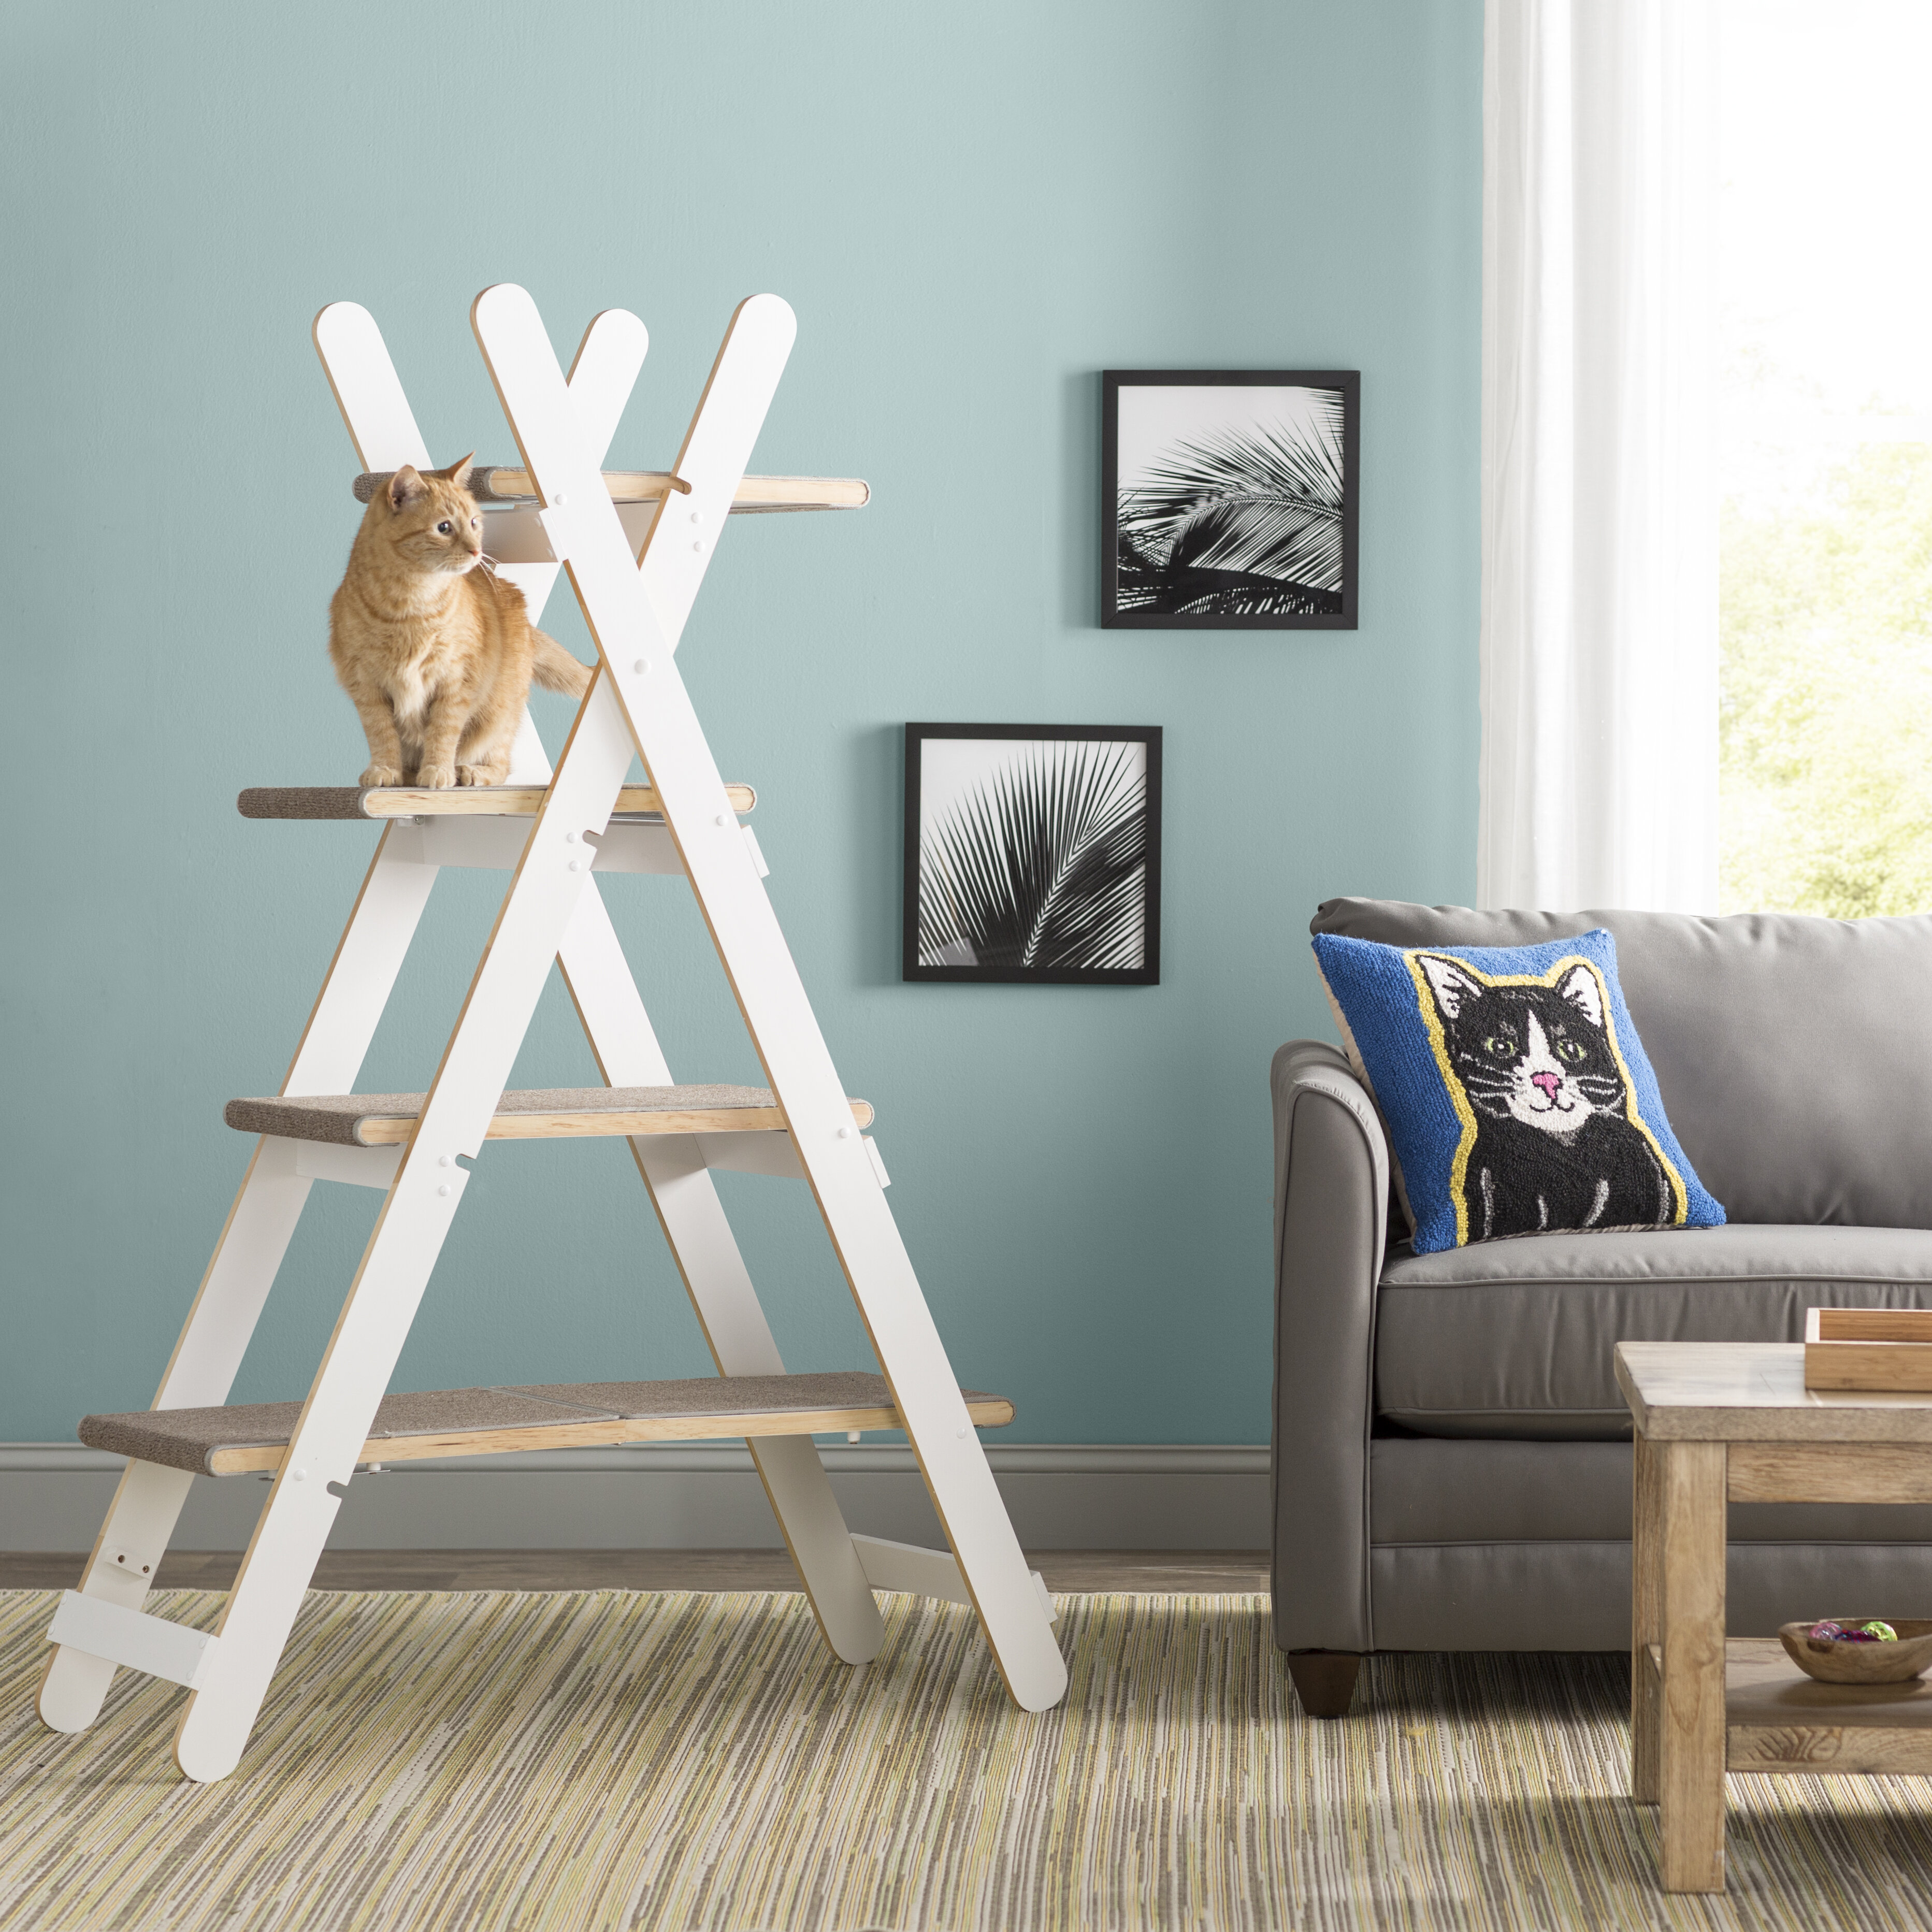 Archie Oscar Algonquin 60 Modern Folding Cat Tree Reviews Wayfair